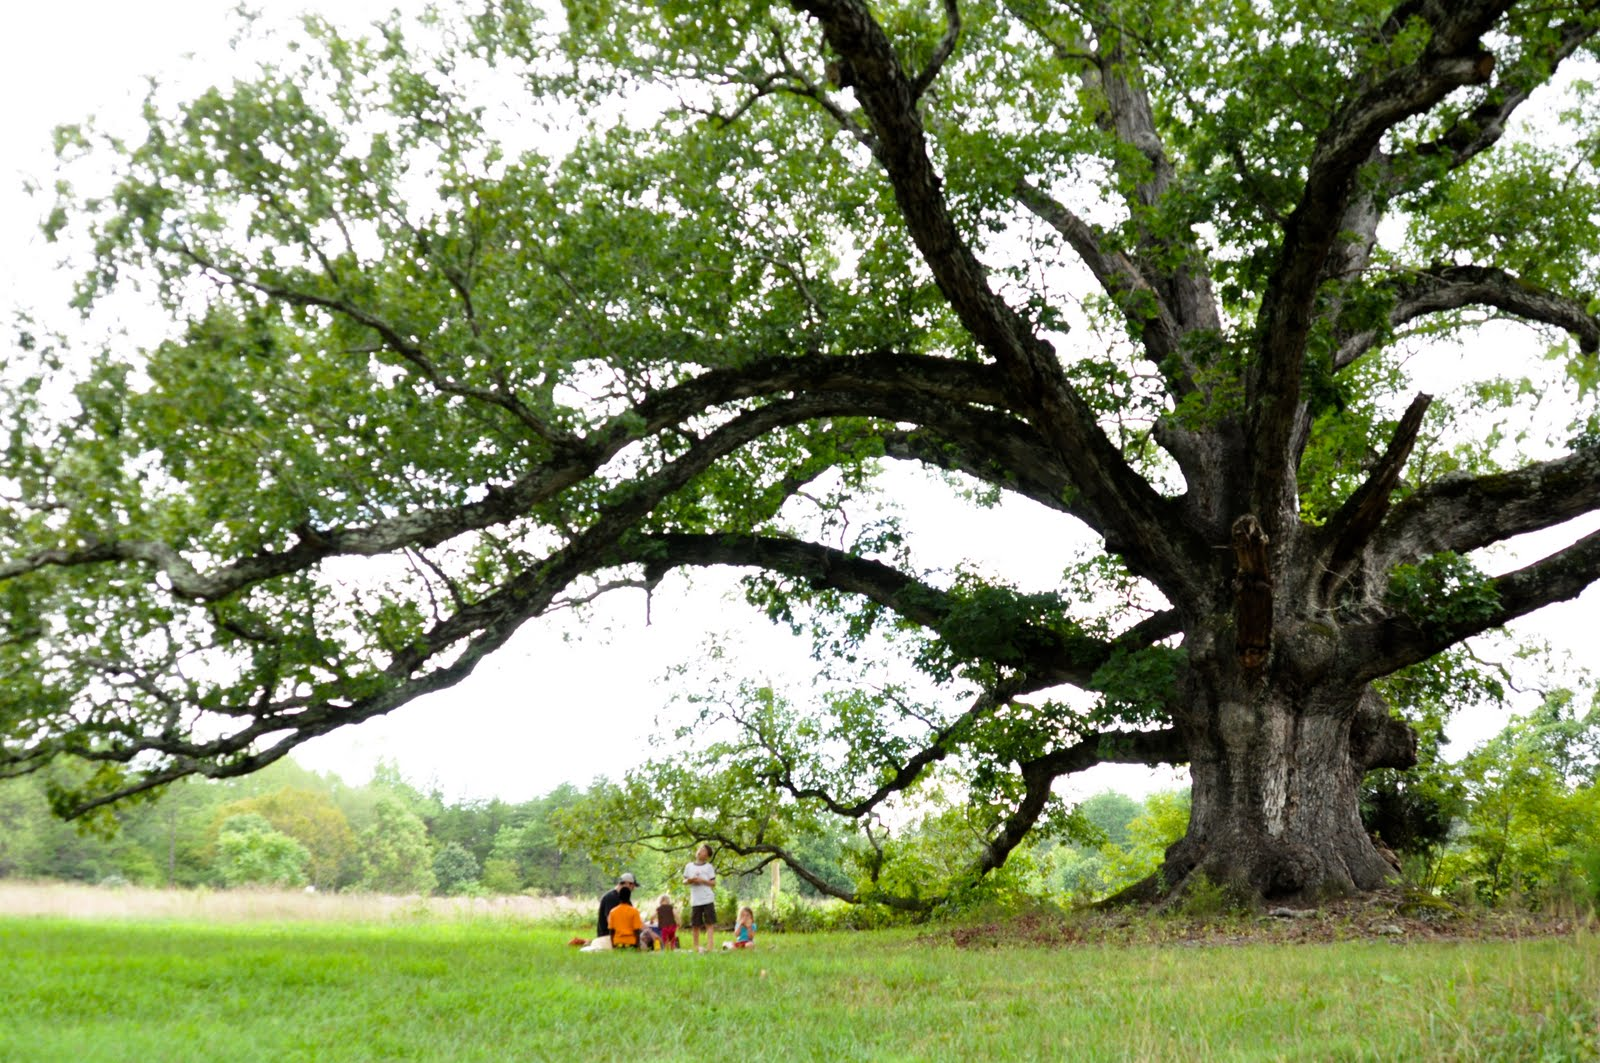 Remarkable trees adventure cumberland county white oak